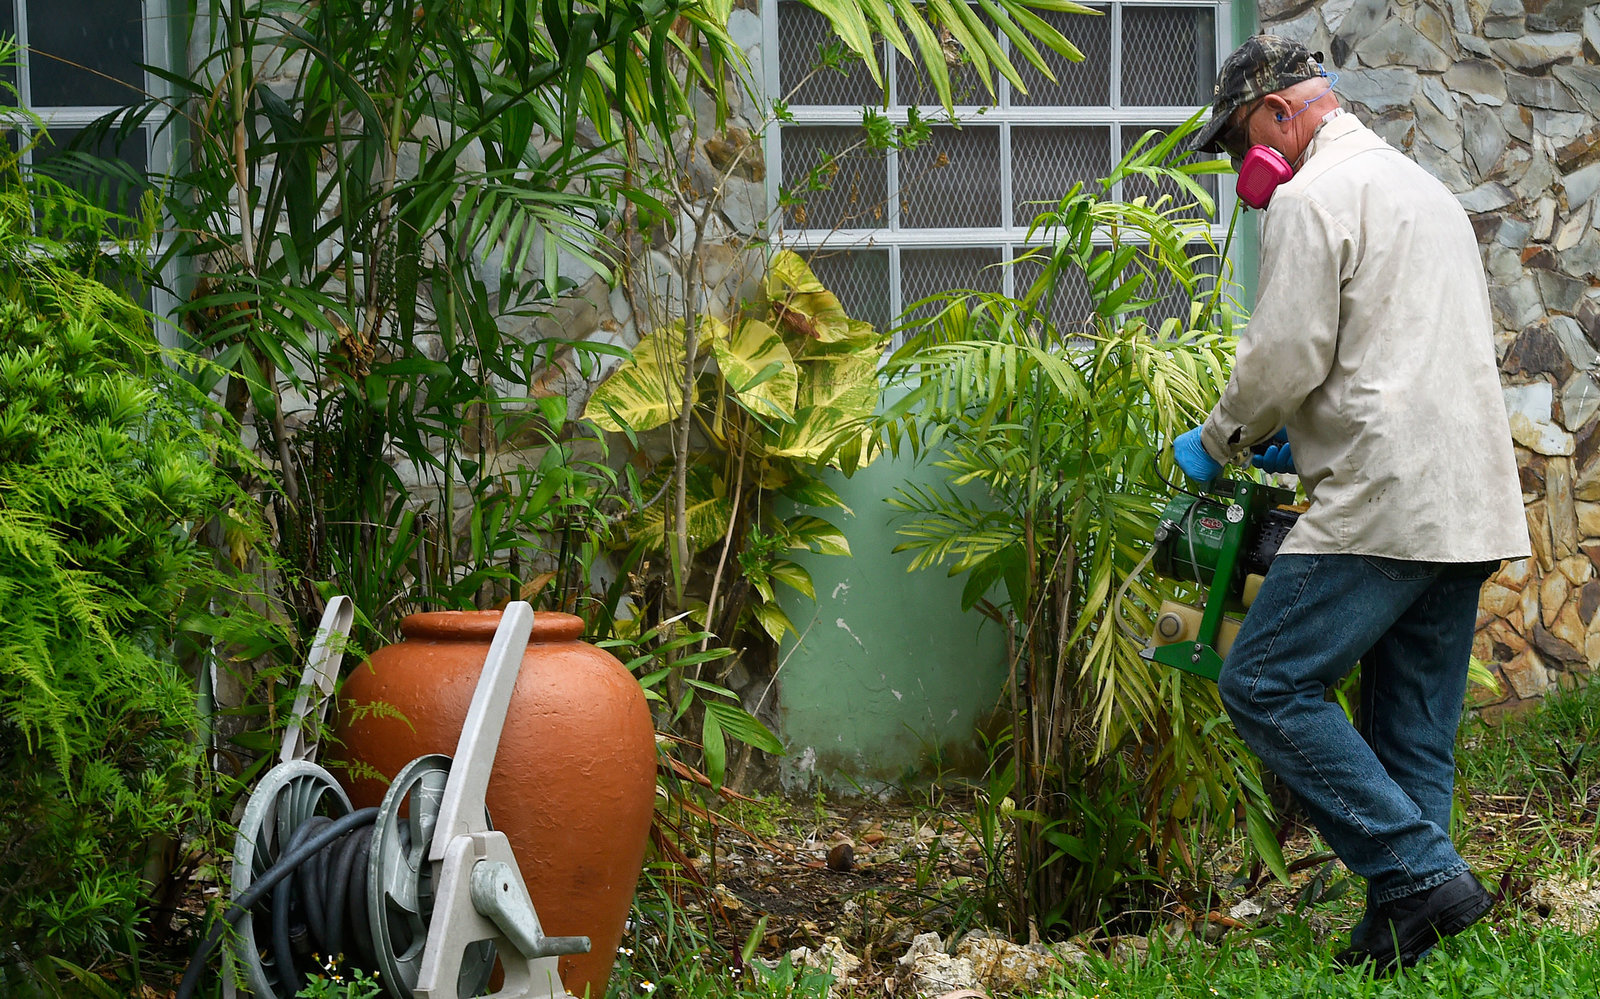 What to know about Zika in Florida